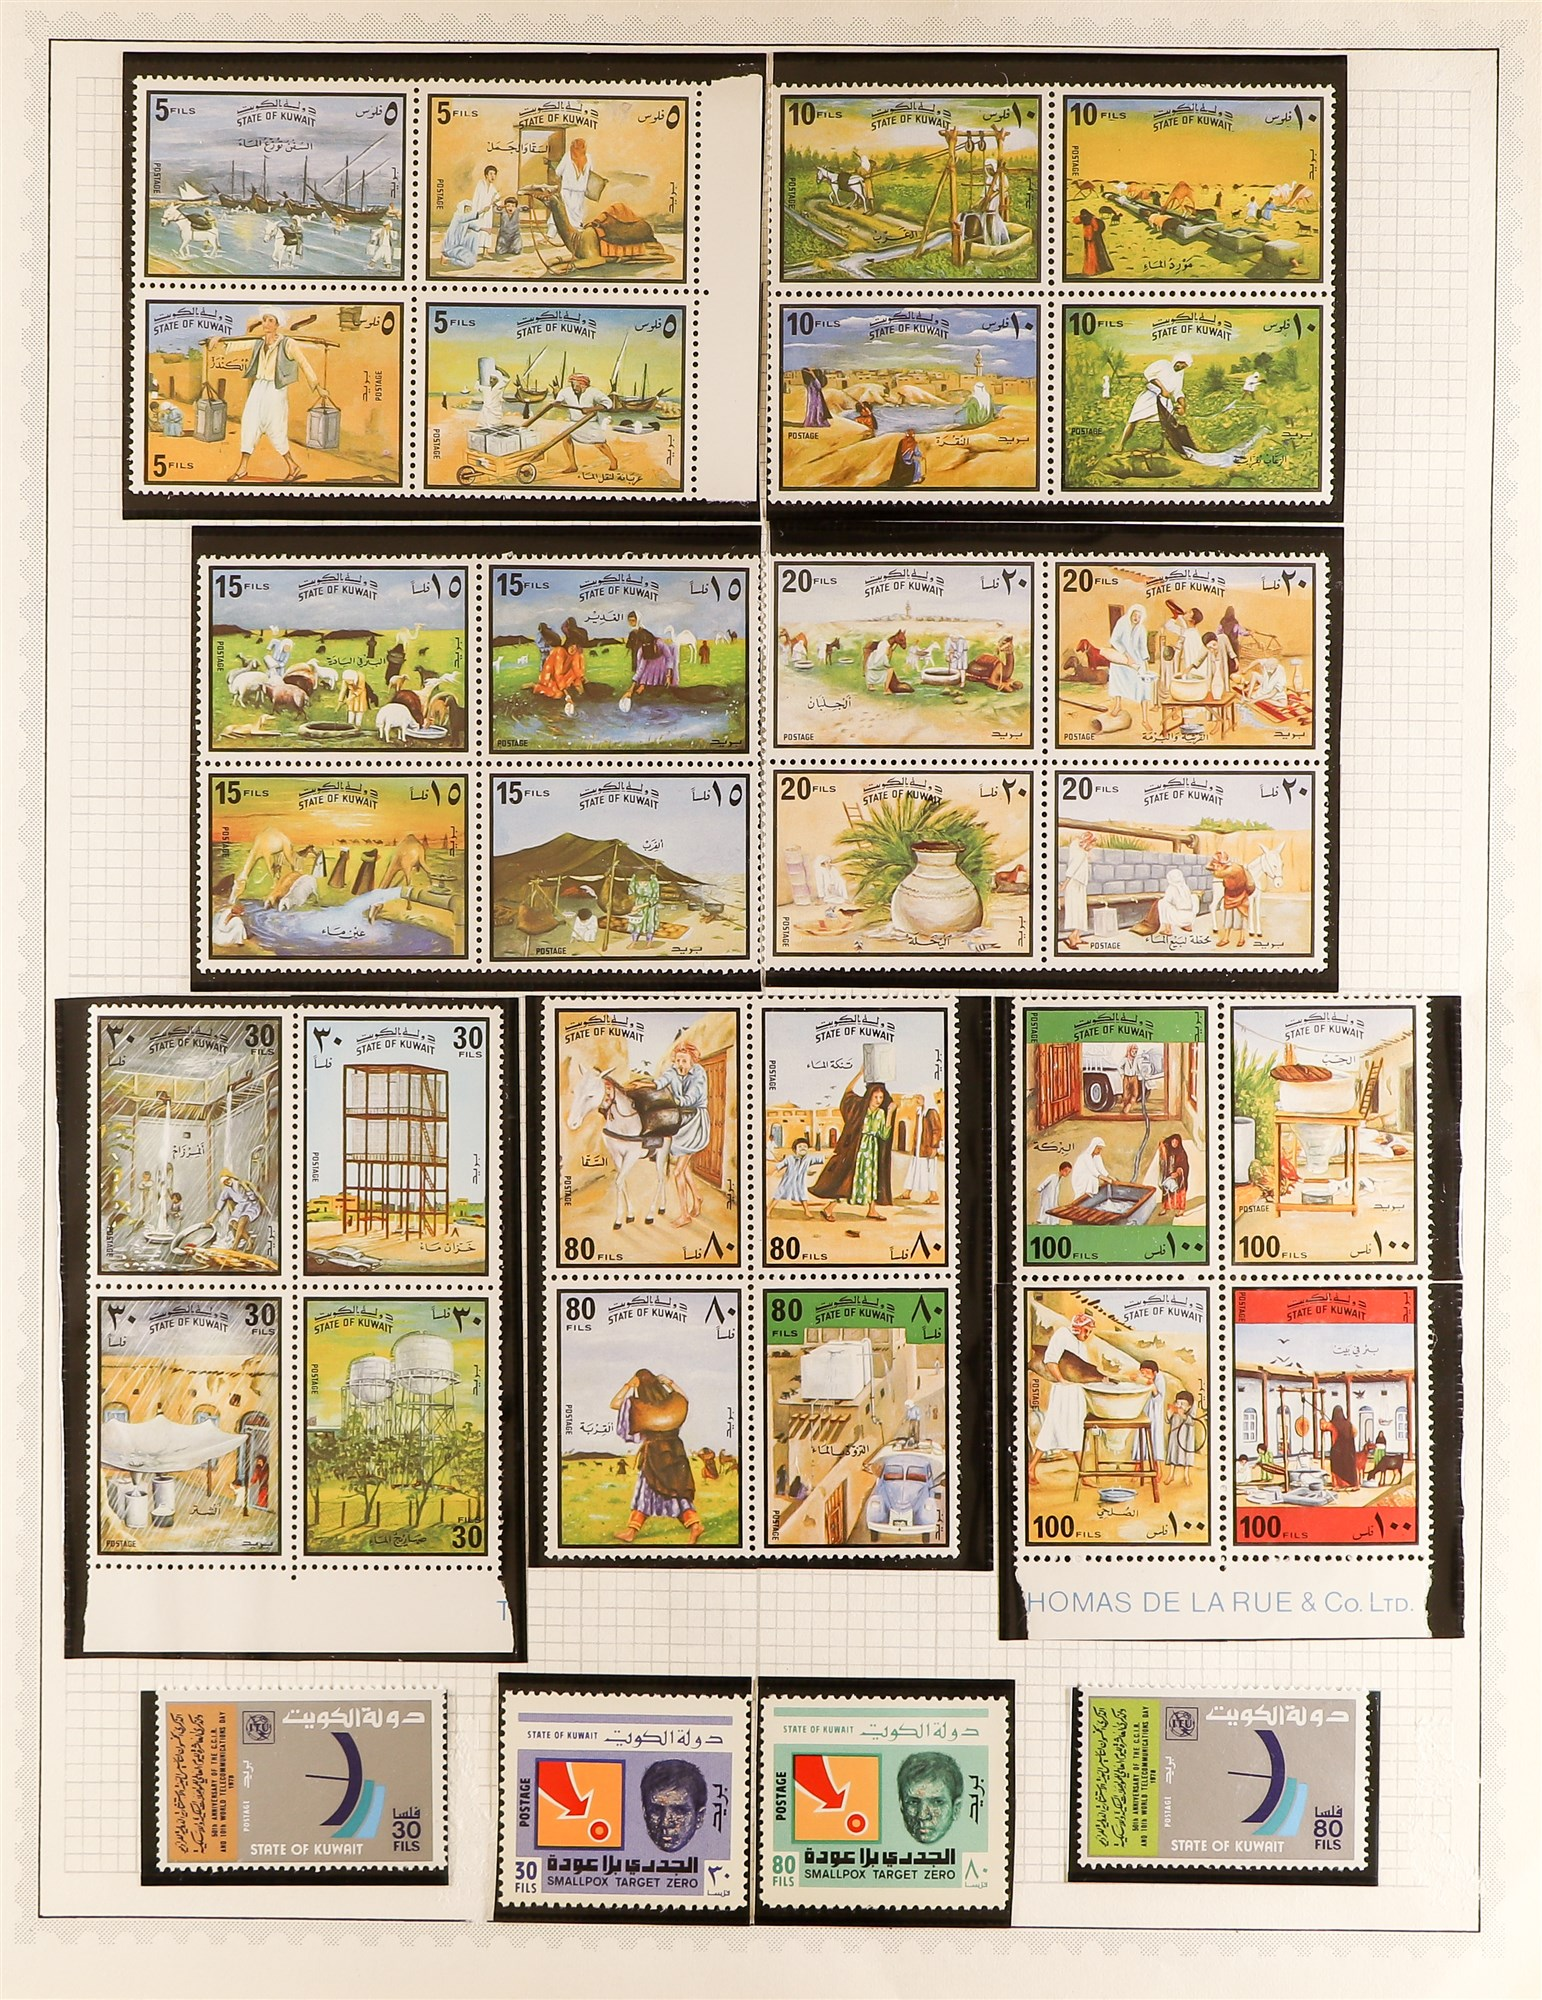 KUWAIT 1977-1983 NEVER HINGED MINT COLLECTION incl. 1977 Sheikh set, 1977 Games se-tenant blocks